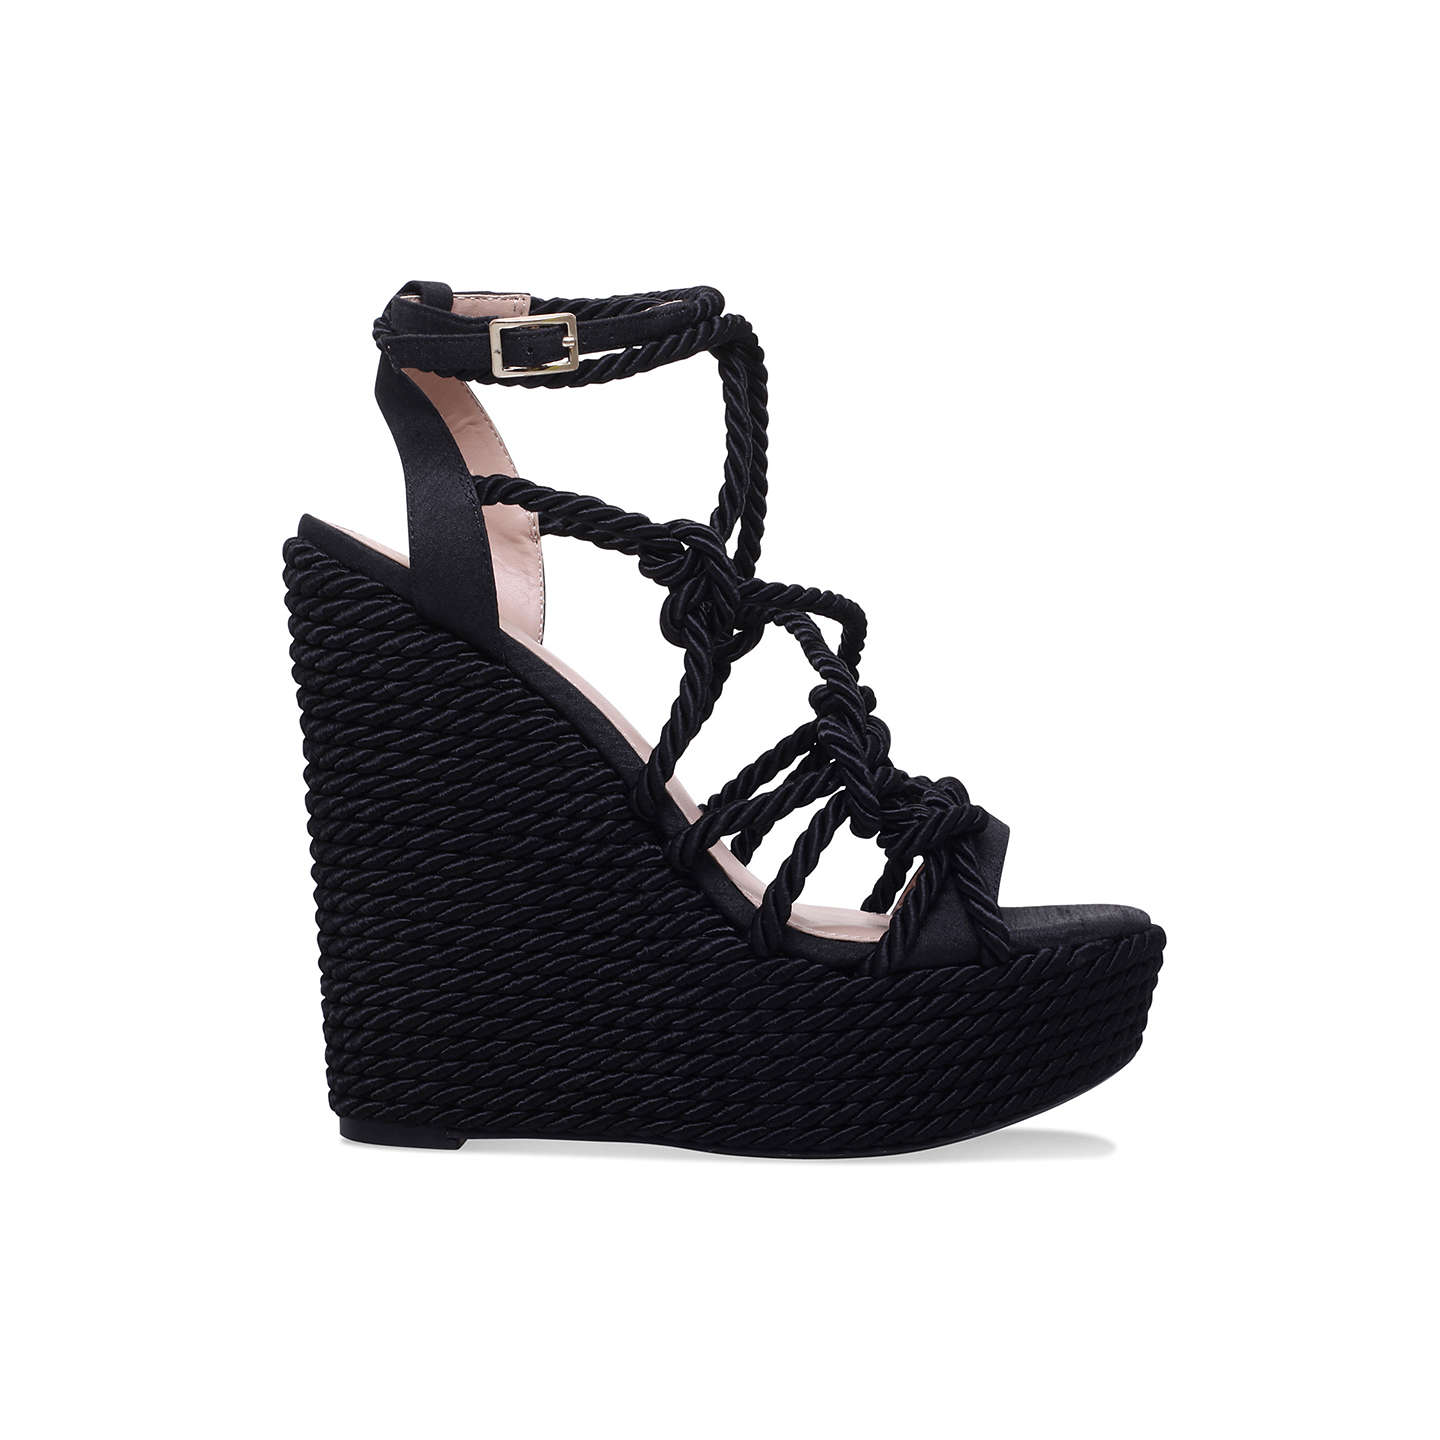 BuyKG by Kurt Geiger Notty Strap Wedge Sandals, Black, 3 Online at johnlewis.com